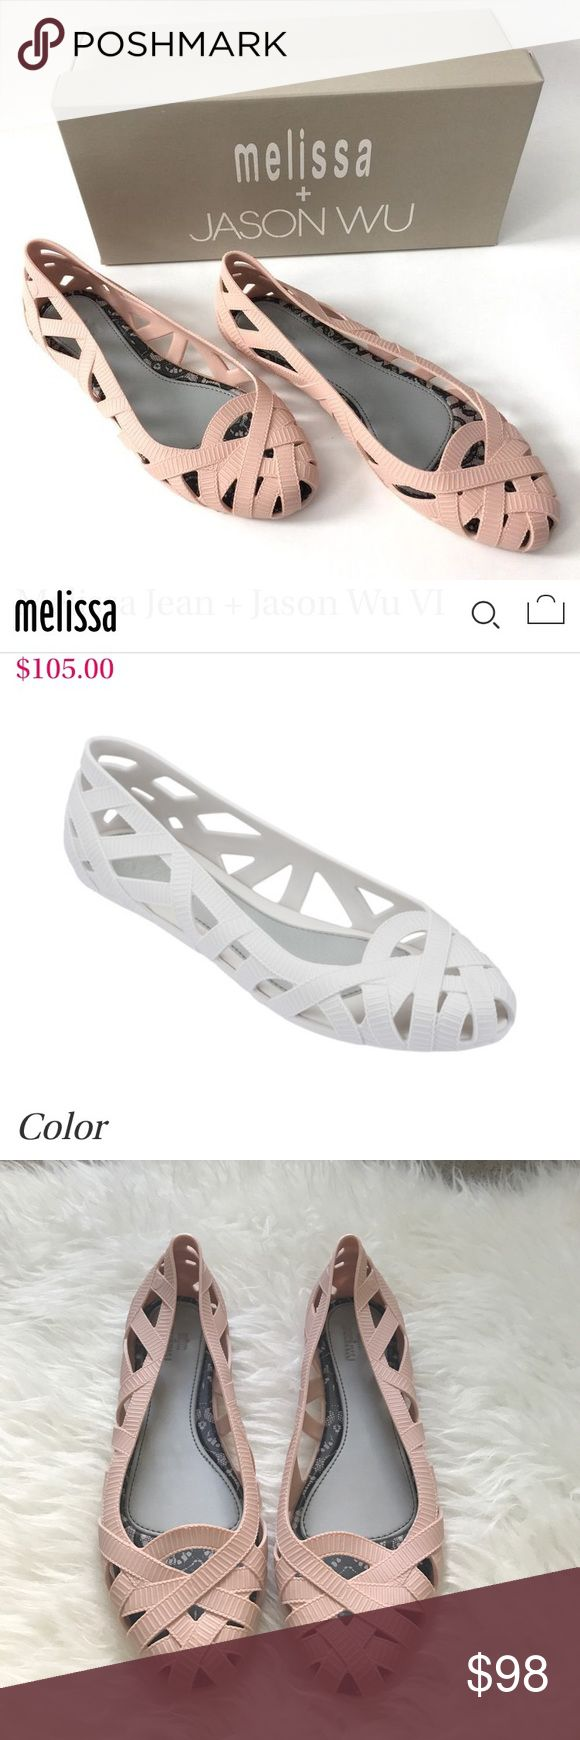 Melissa Jelly Flats Size 10 Excellent Condition  No box  No trade  No model  First two pictures I get from google Melissa Shoes Sandals